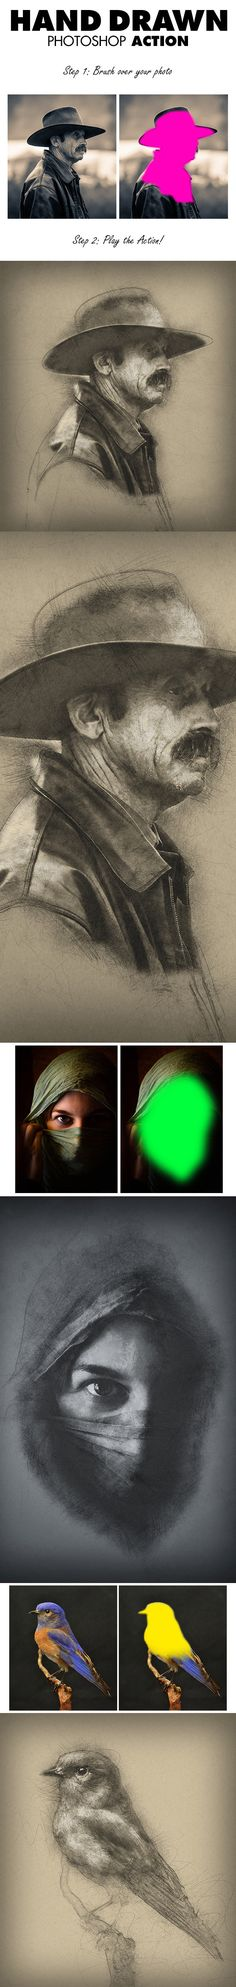 16-Hand Drawn Photoshop Action